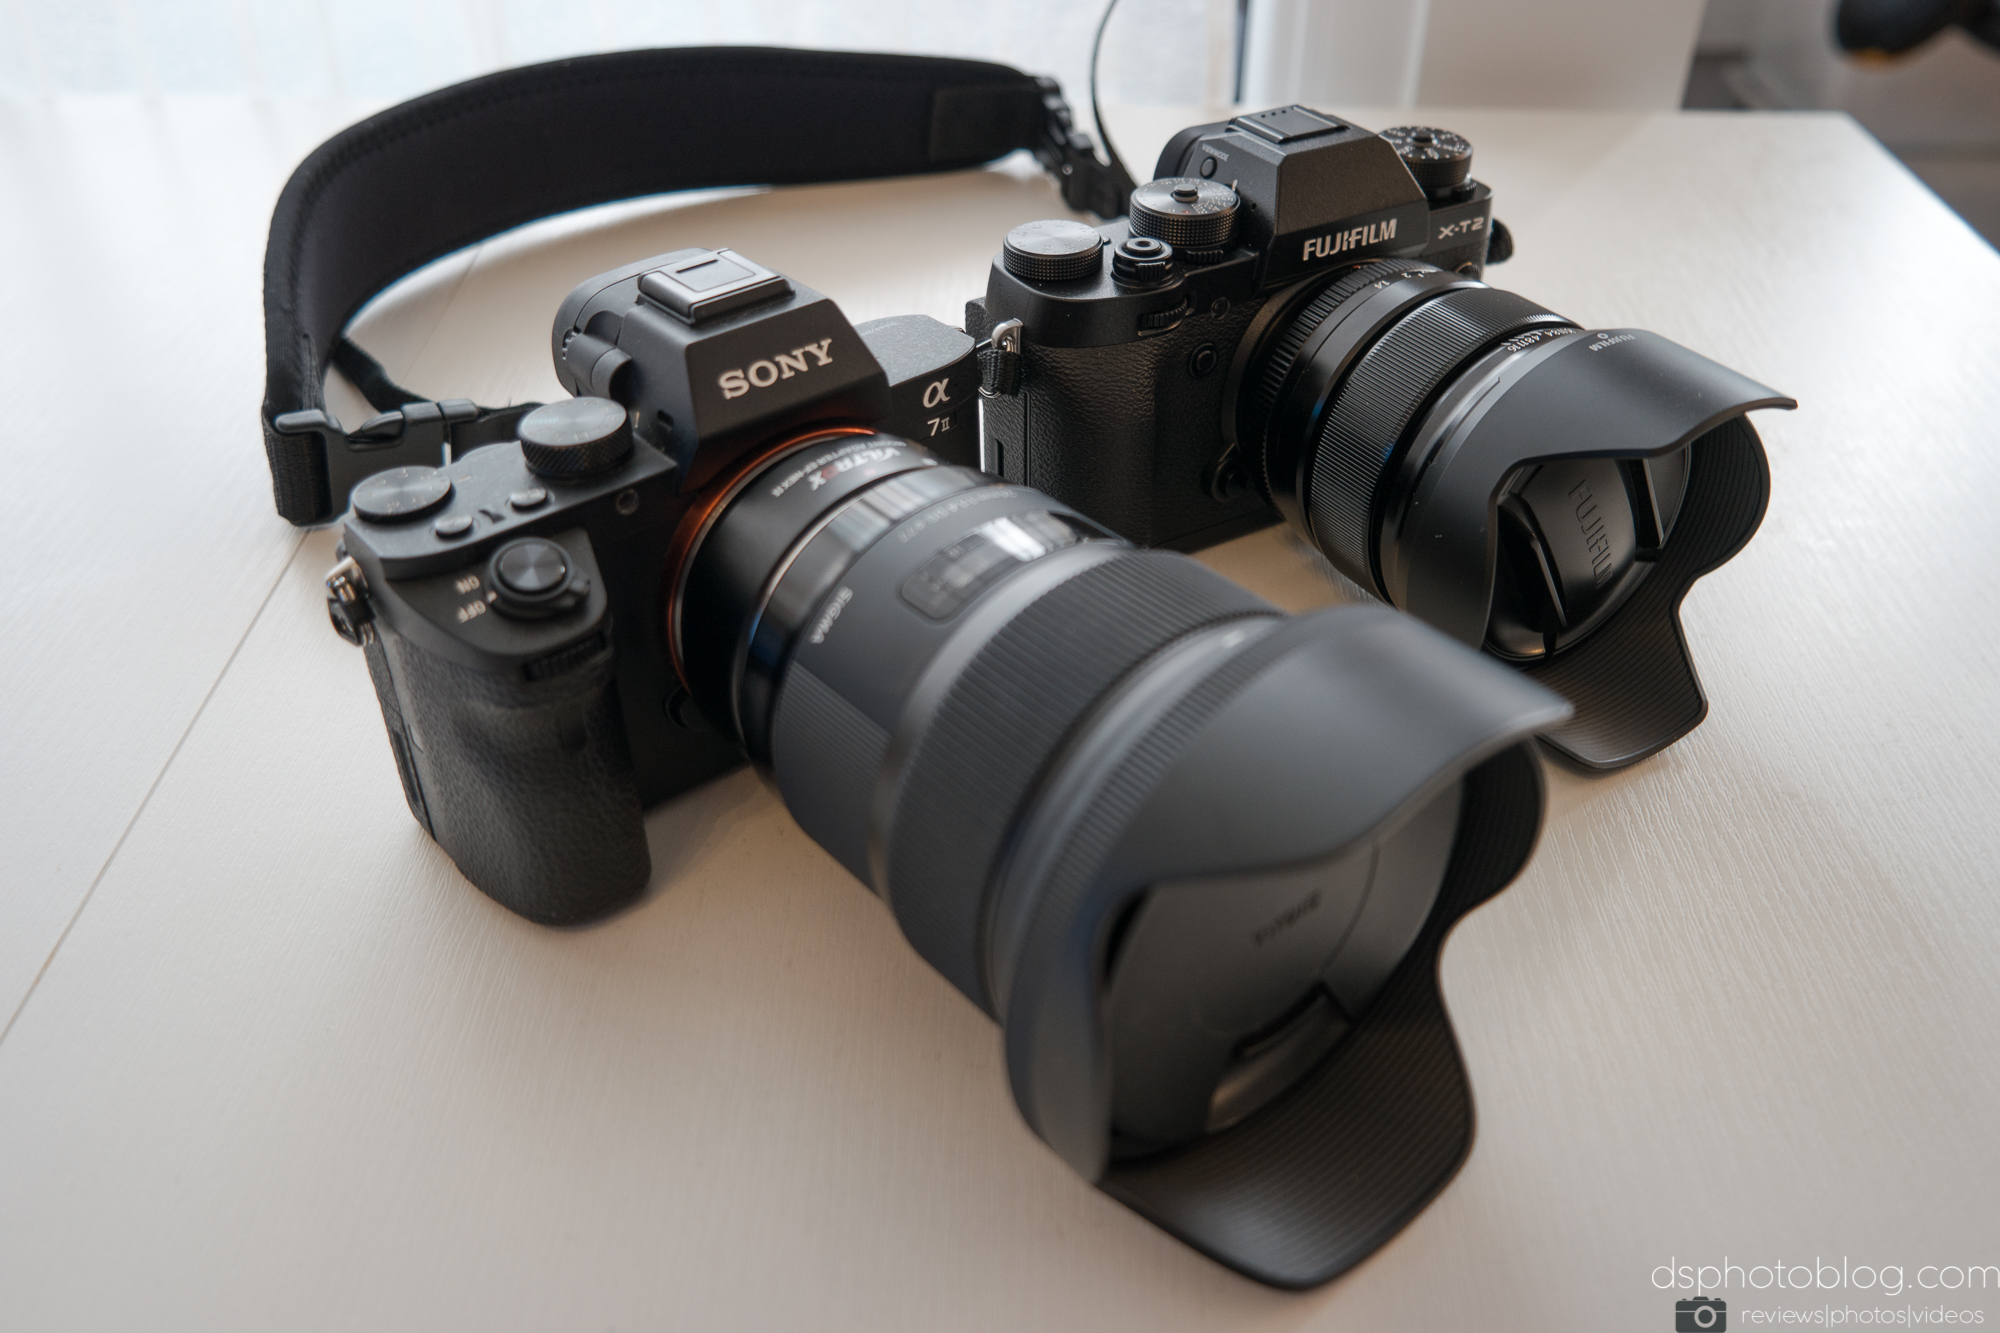 FUJI XT2 REVIEW and why i switched from Sony – dsphotoblog com